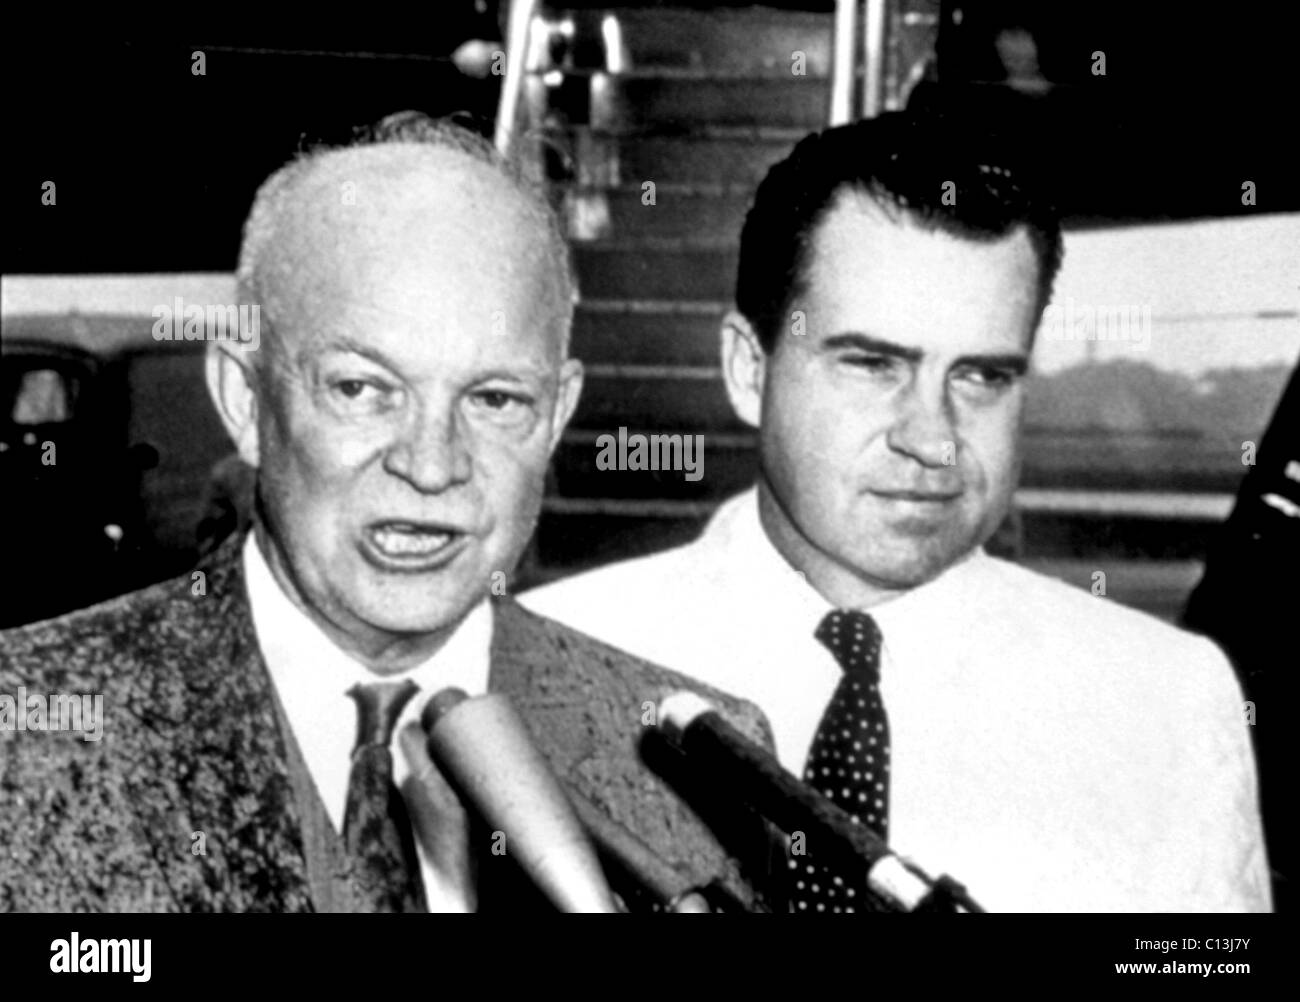 Dwight D. Eisenhower, Richard Nixon, circa late 1950s - Stock Image